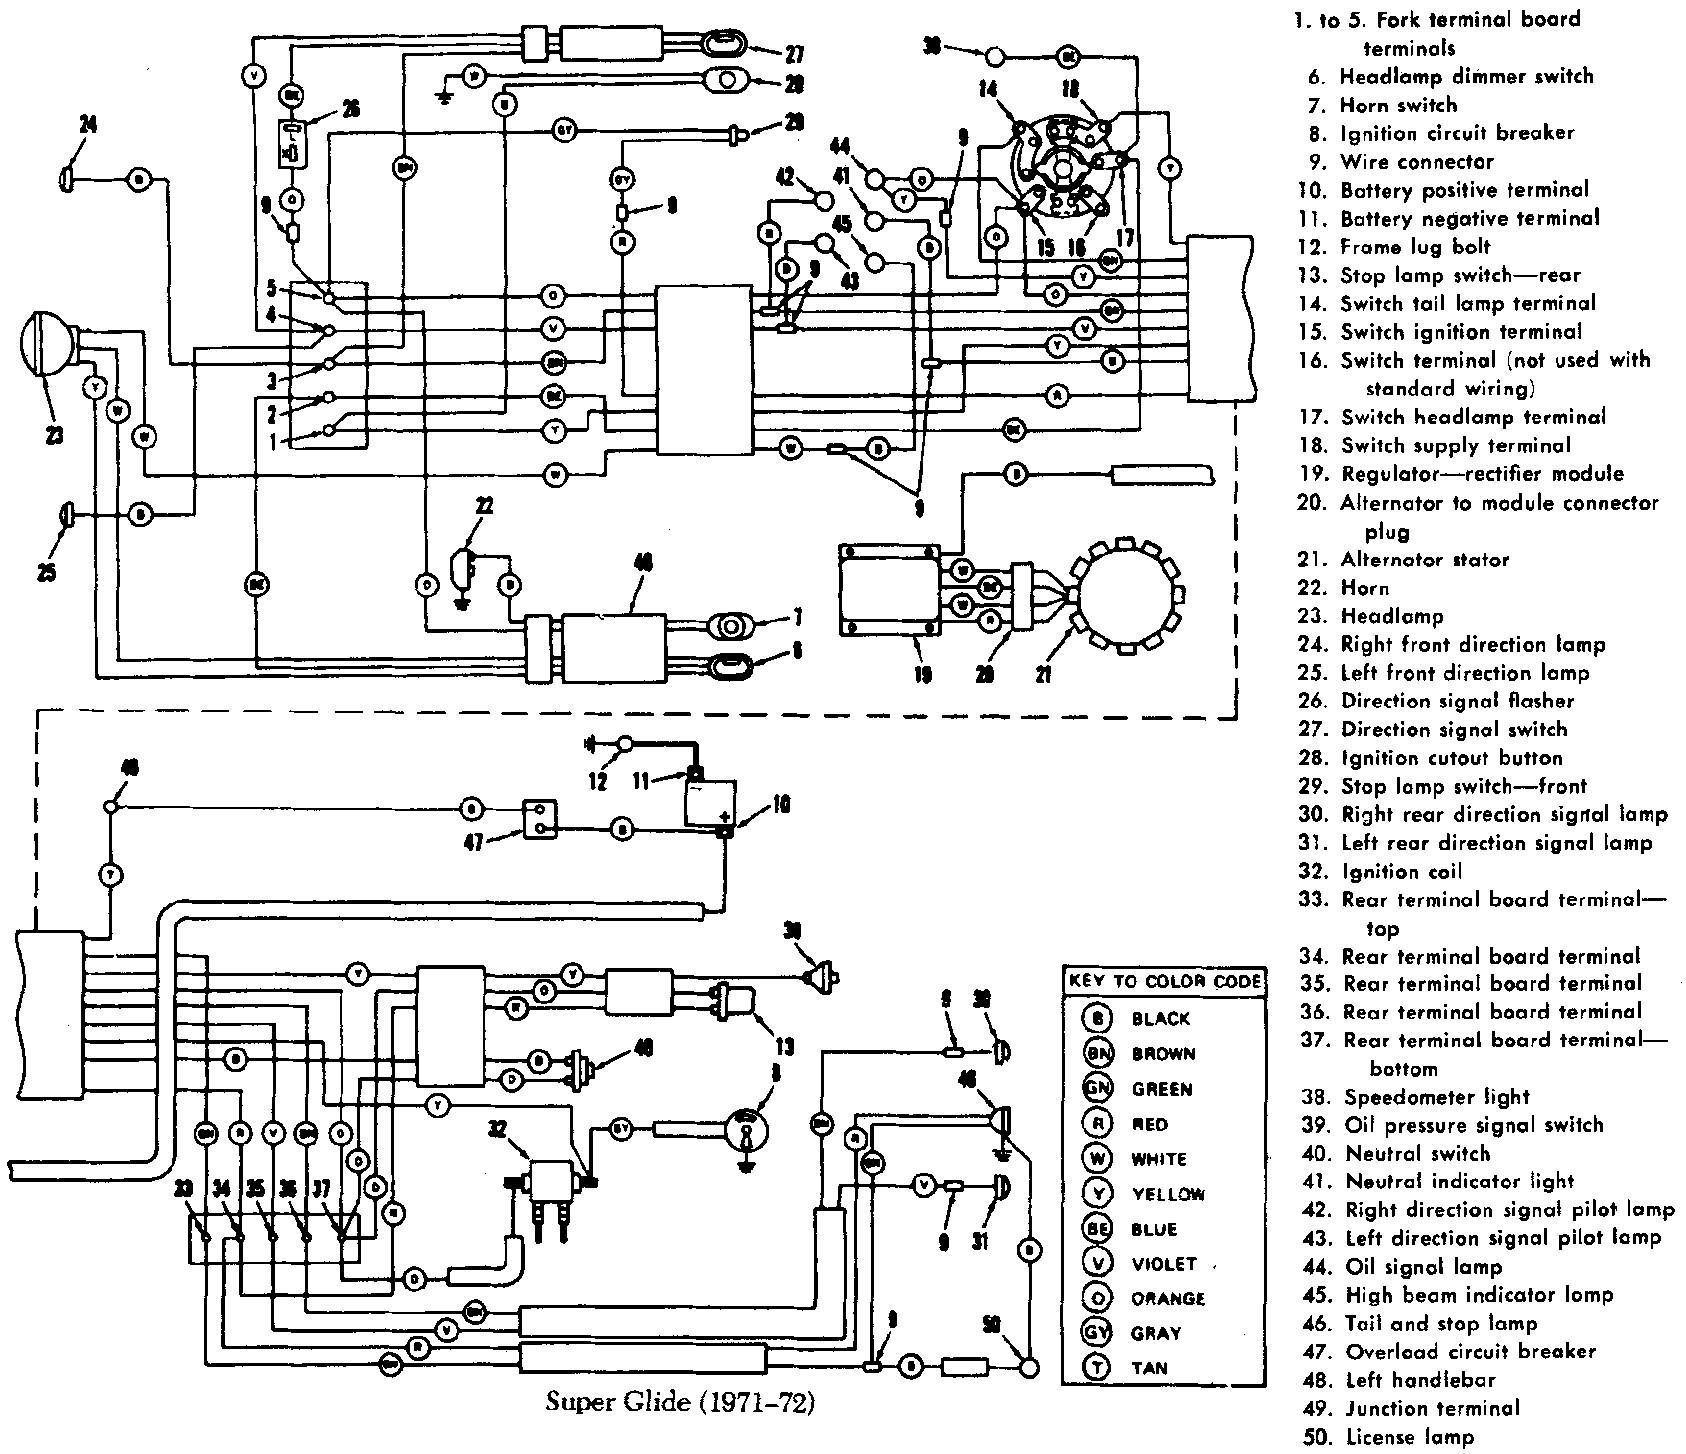 harley ignition switch wiring diagram Download-harley ignition switch wiring diagram Collection Gallery of Fresh Harley Davidson Ignition Switch Wiring Diagram 8-j